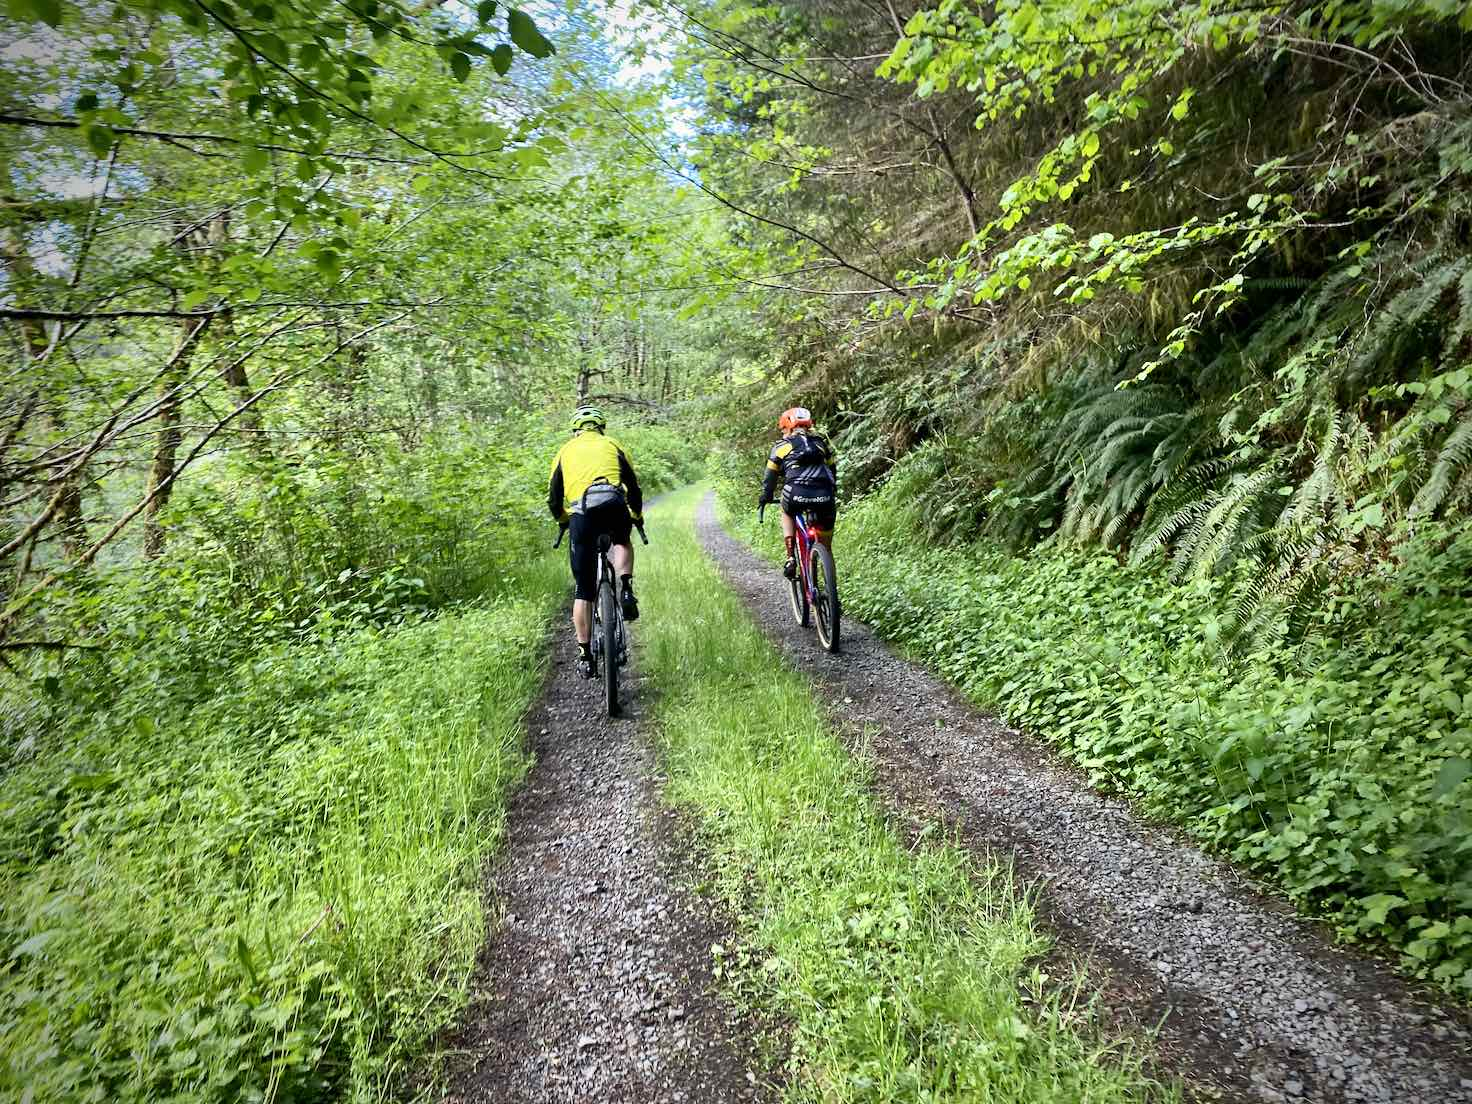 Cyclists climbing the wet and green weed-whacker hill.